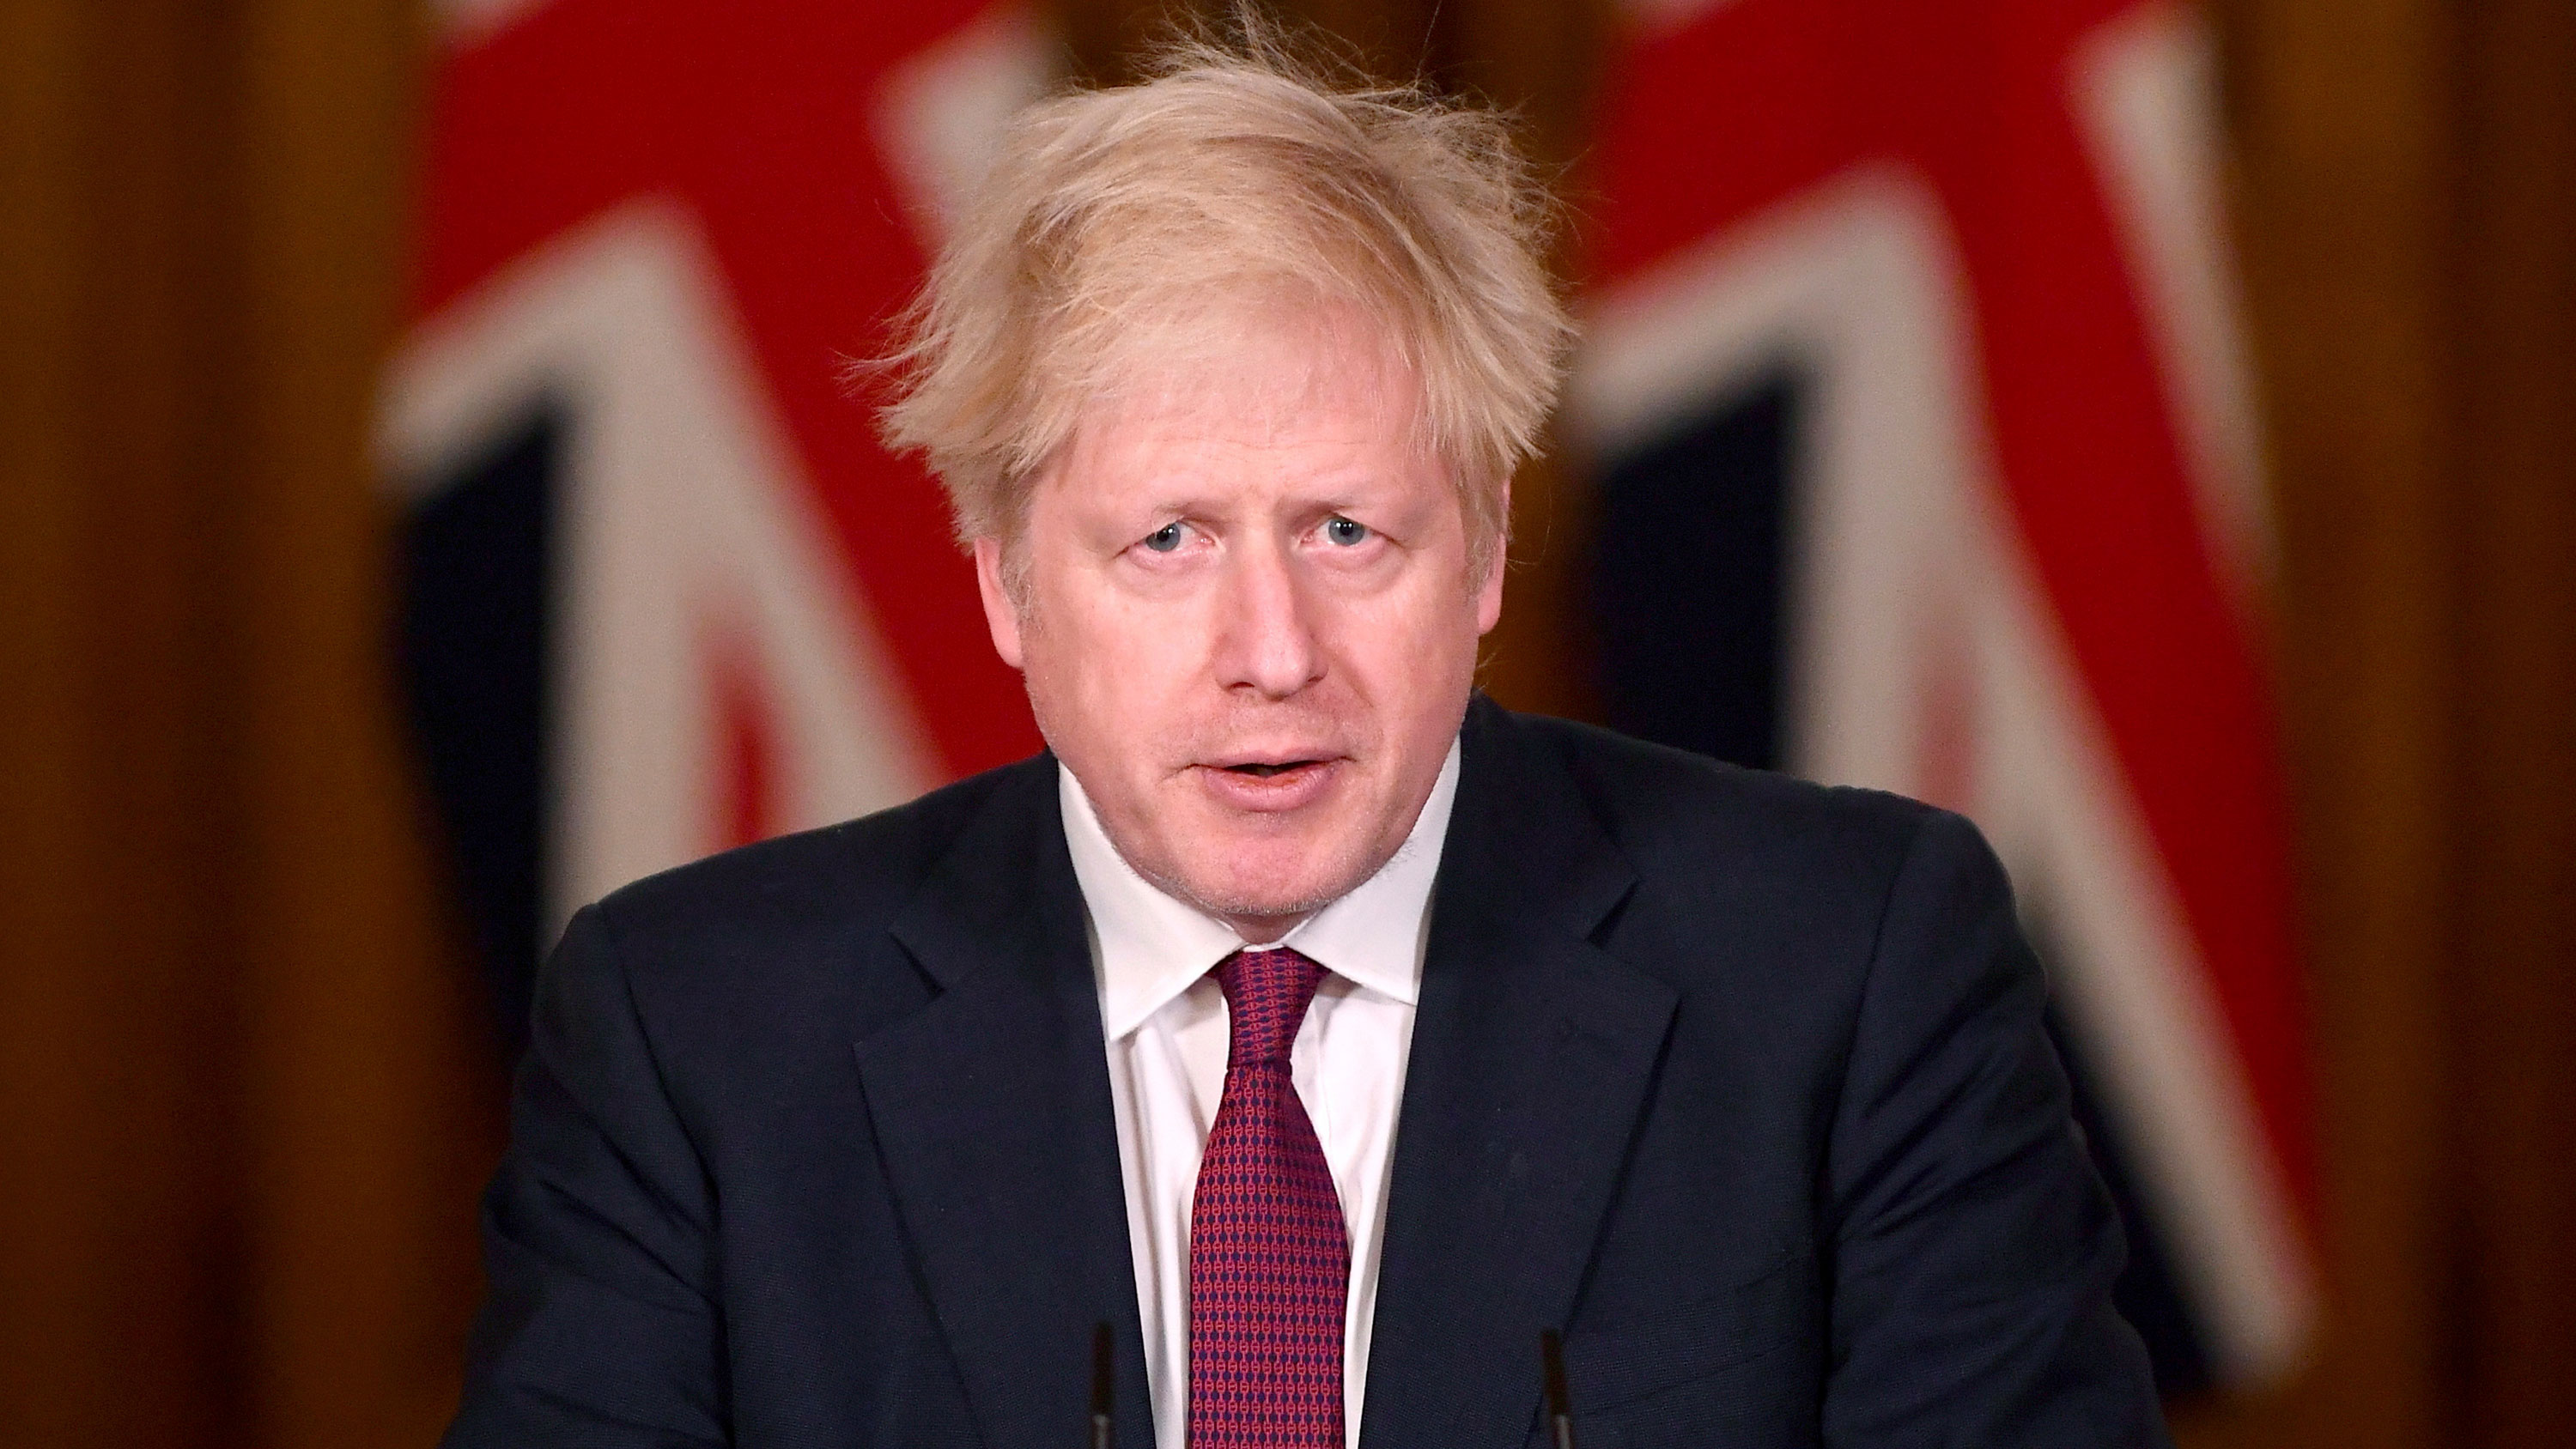 Britain's Prime Minister Boris Johnson speaks during a news conference in response to the ongoing situation with the coronavirus pandemic on December 19 in London.